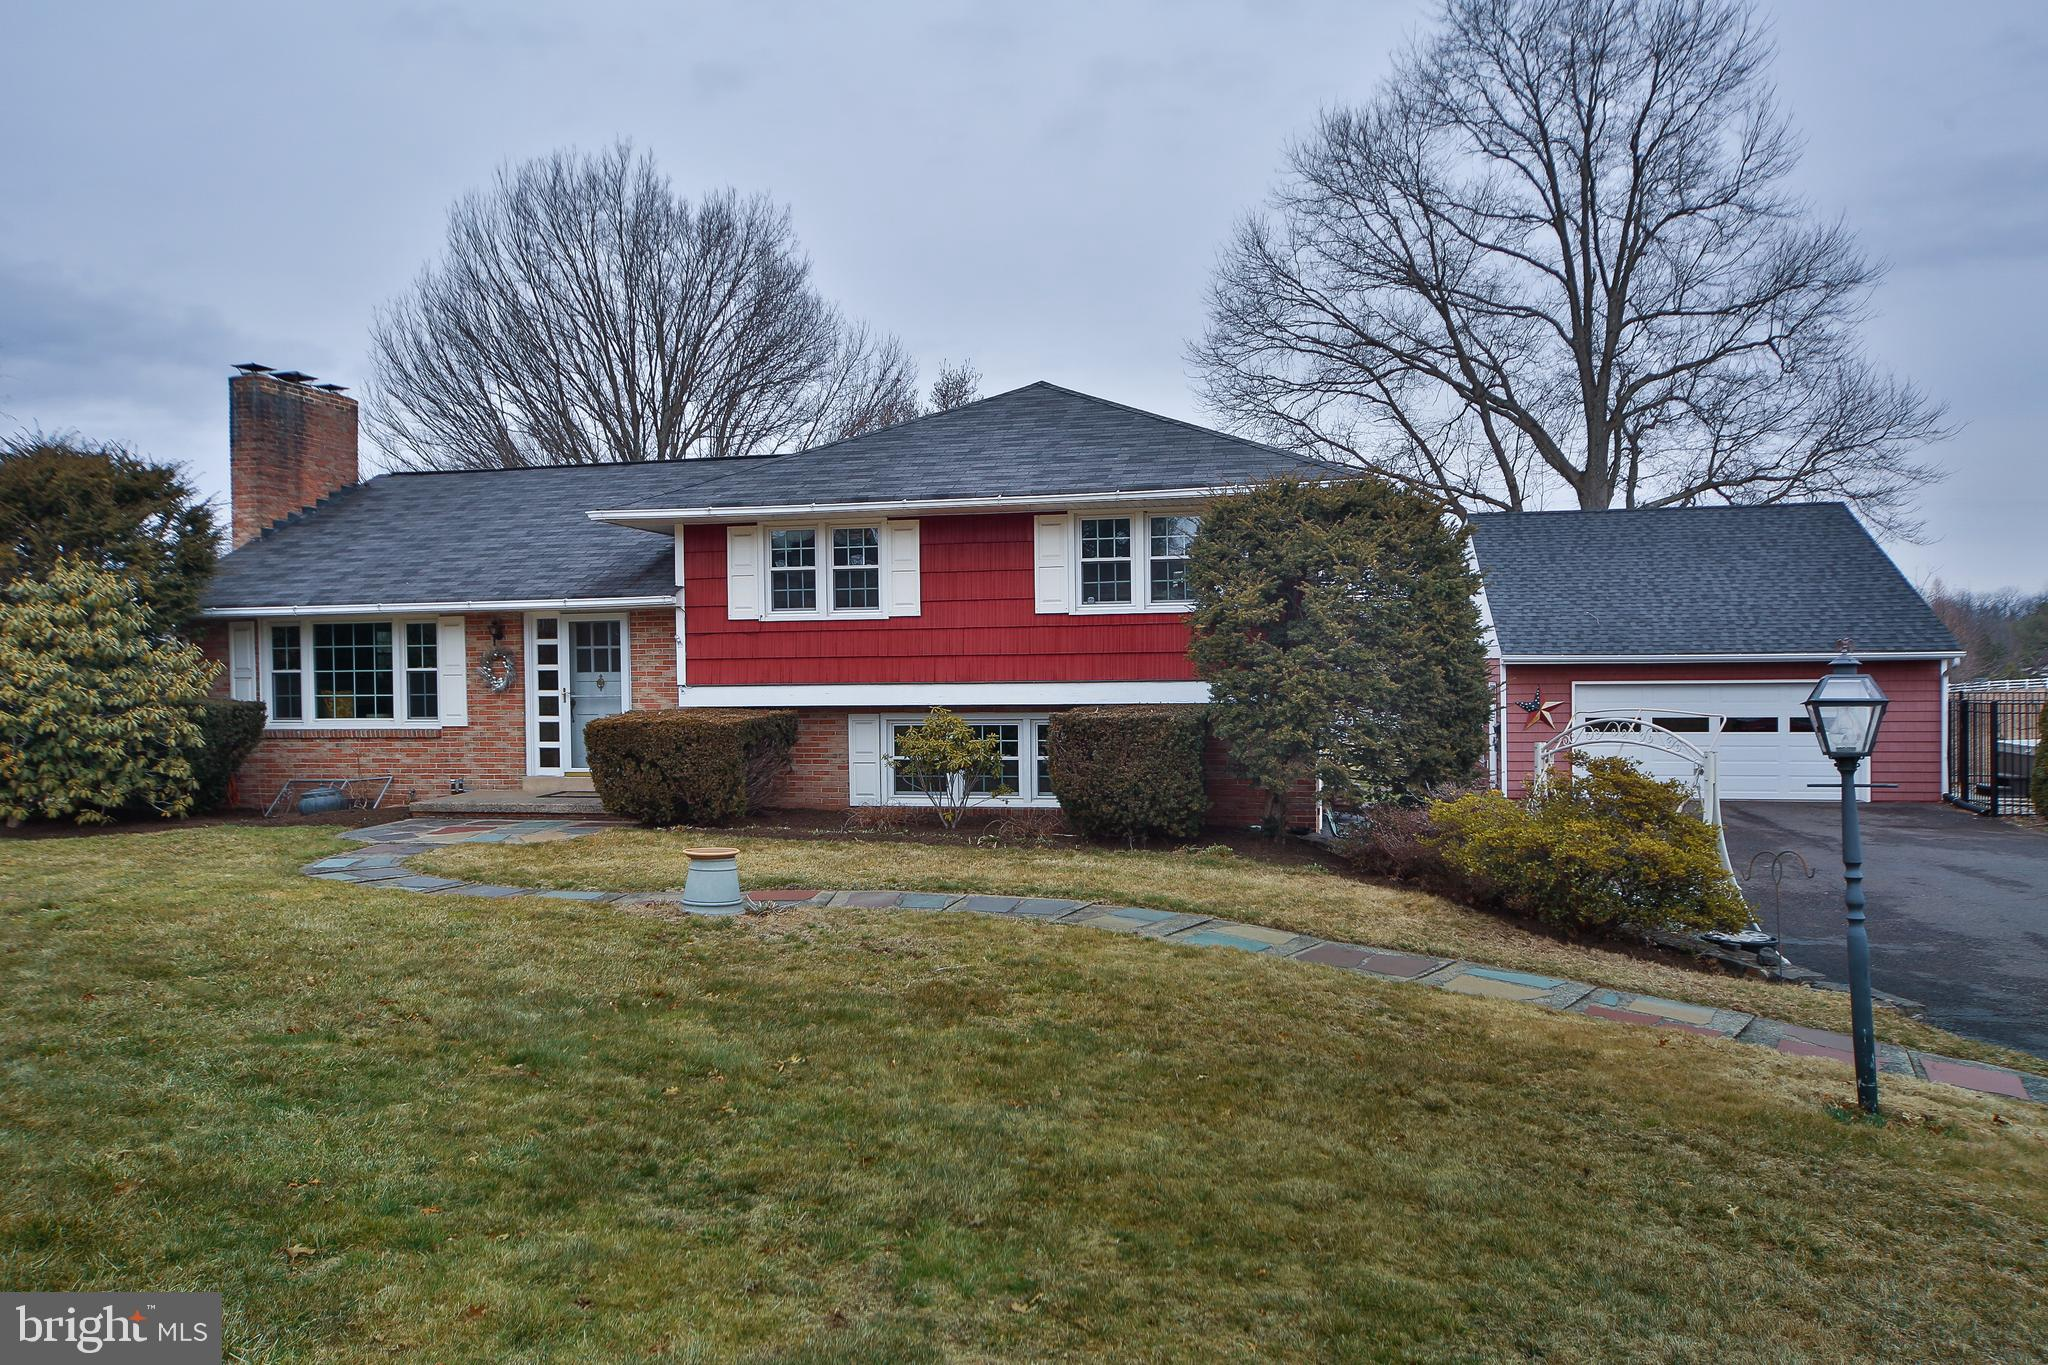 2605 COUNTY LINE ROAD, TELFORD, PA 18969